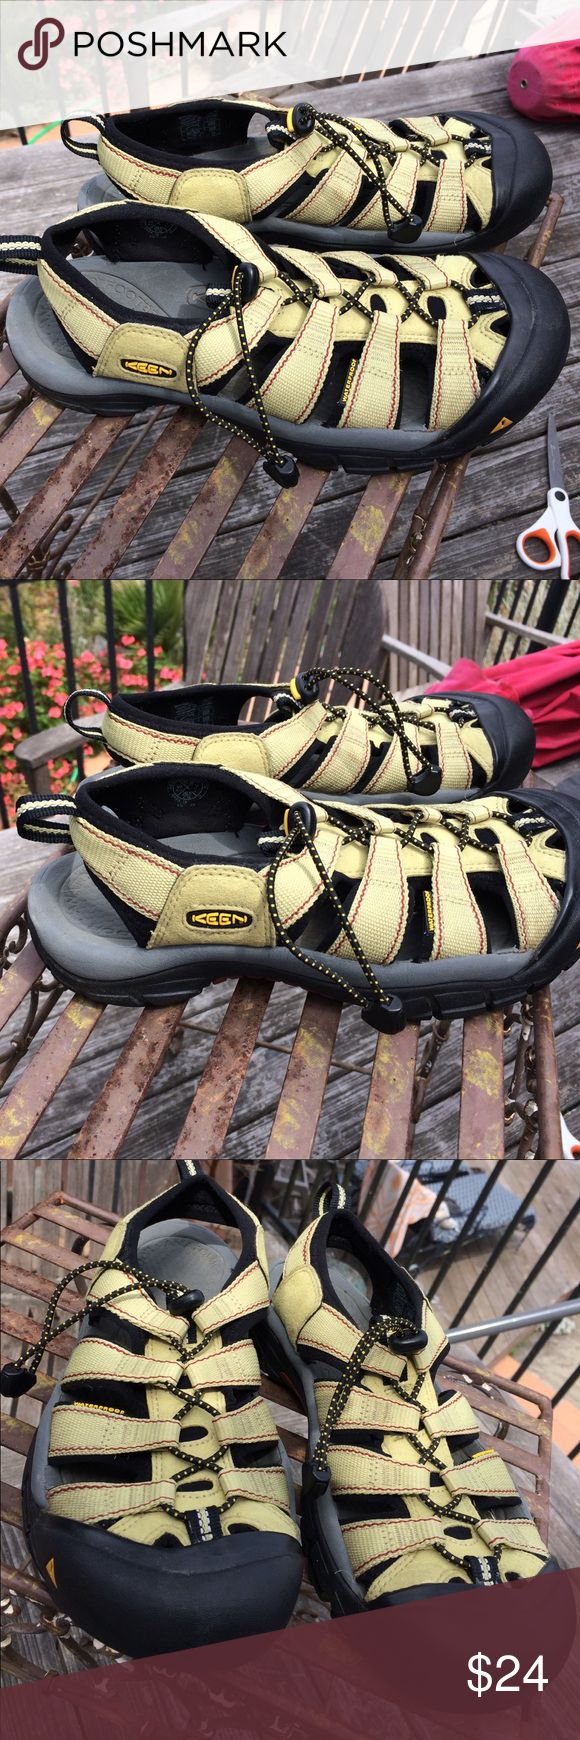 Keen women's waterproof sandals Lightly used and in great condition. Nice light lime green color. Keen Shoes Athletic Shoes